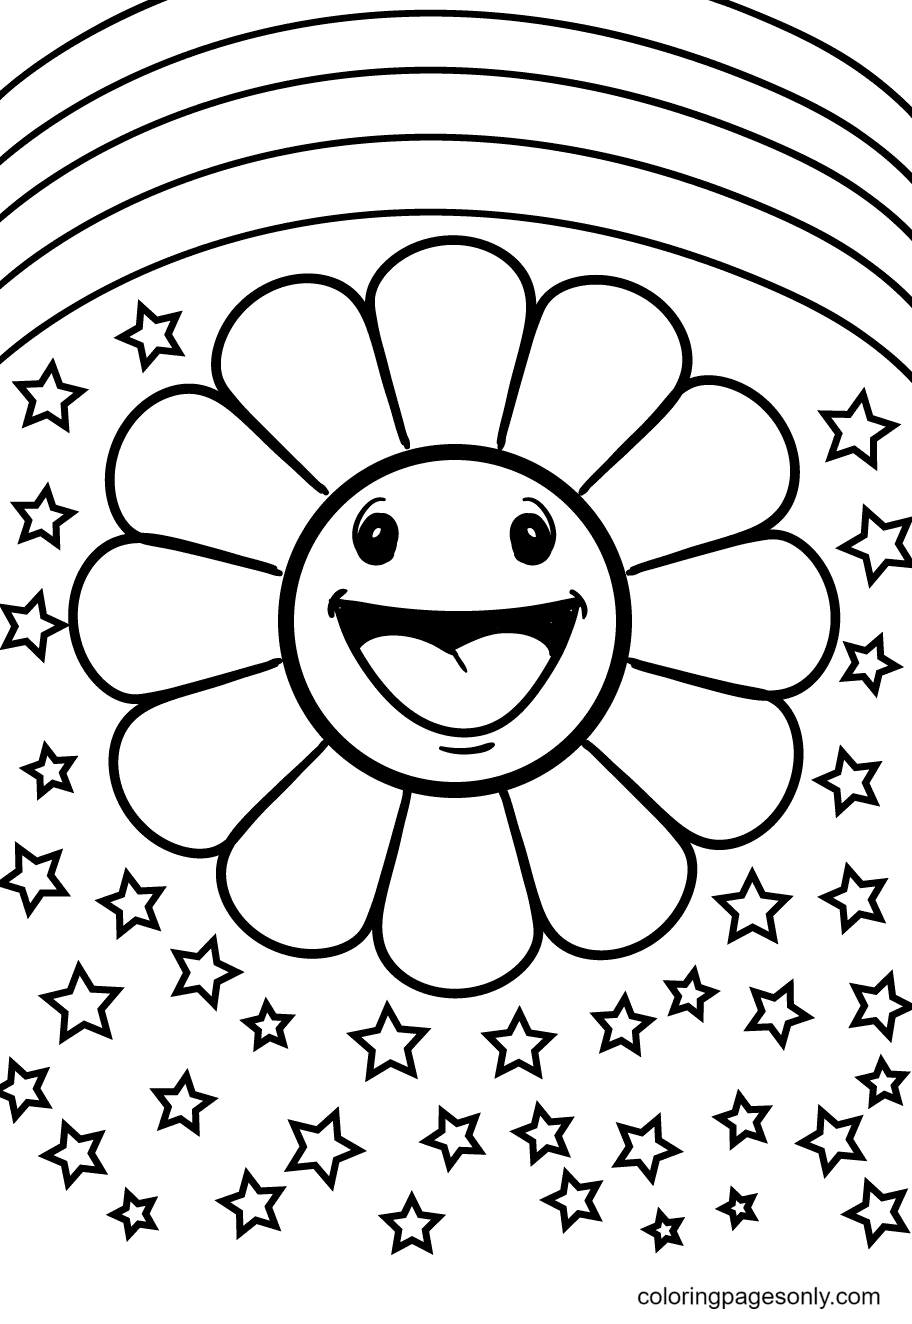 Flowers with Rainbows Coloring Page